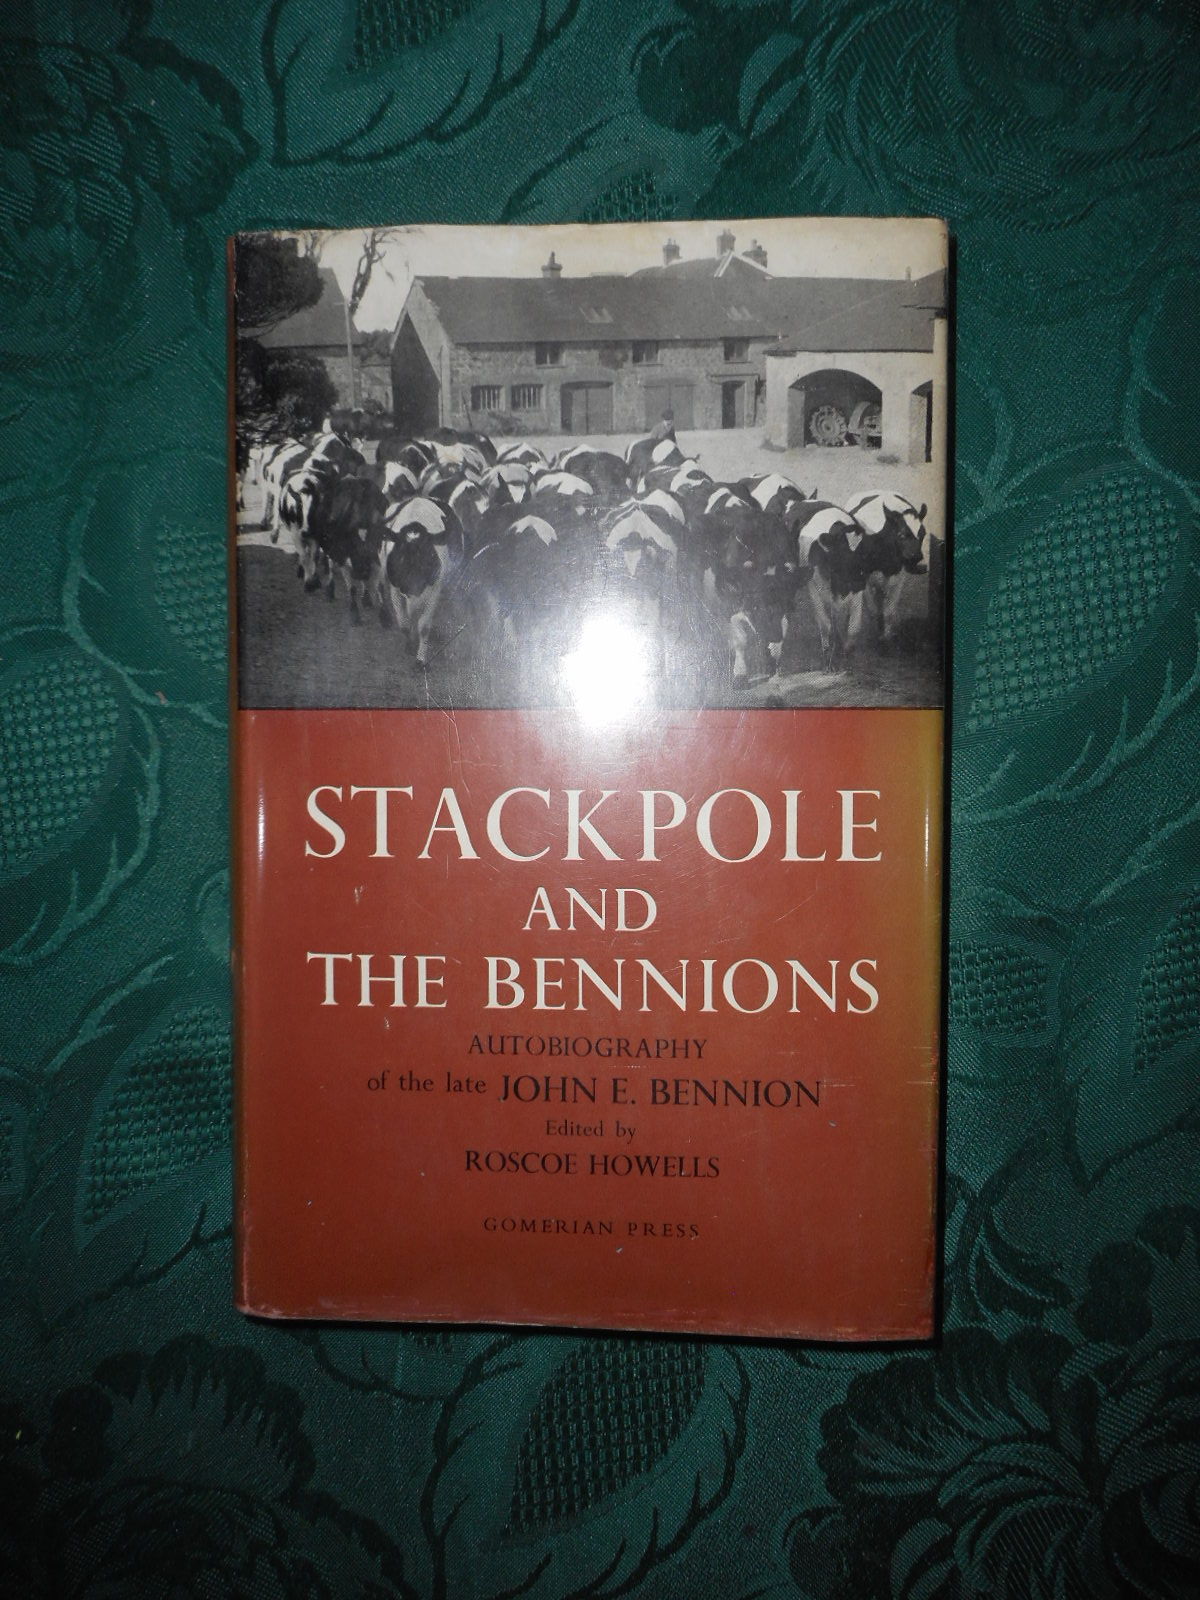 Image for STACKPOLE and the BENNIONS. Being the Autobiography of John E. Bennion. Edited by Roscoe Howells.  (Signed by 'Young John', John E. Bennion's Son)